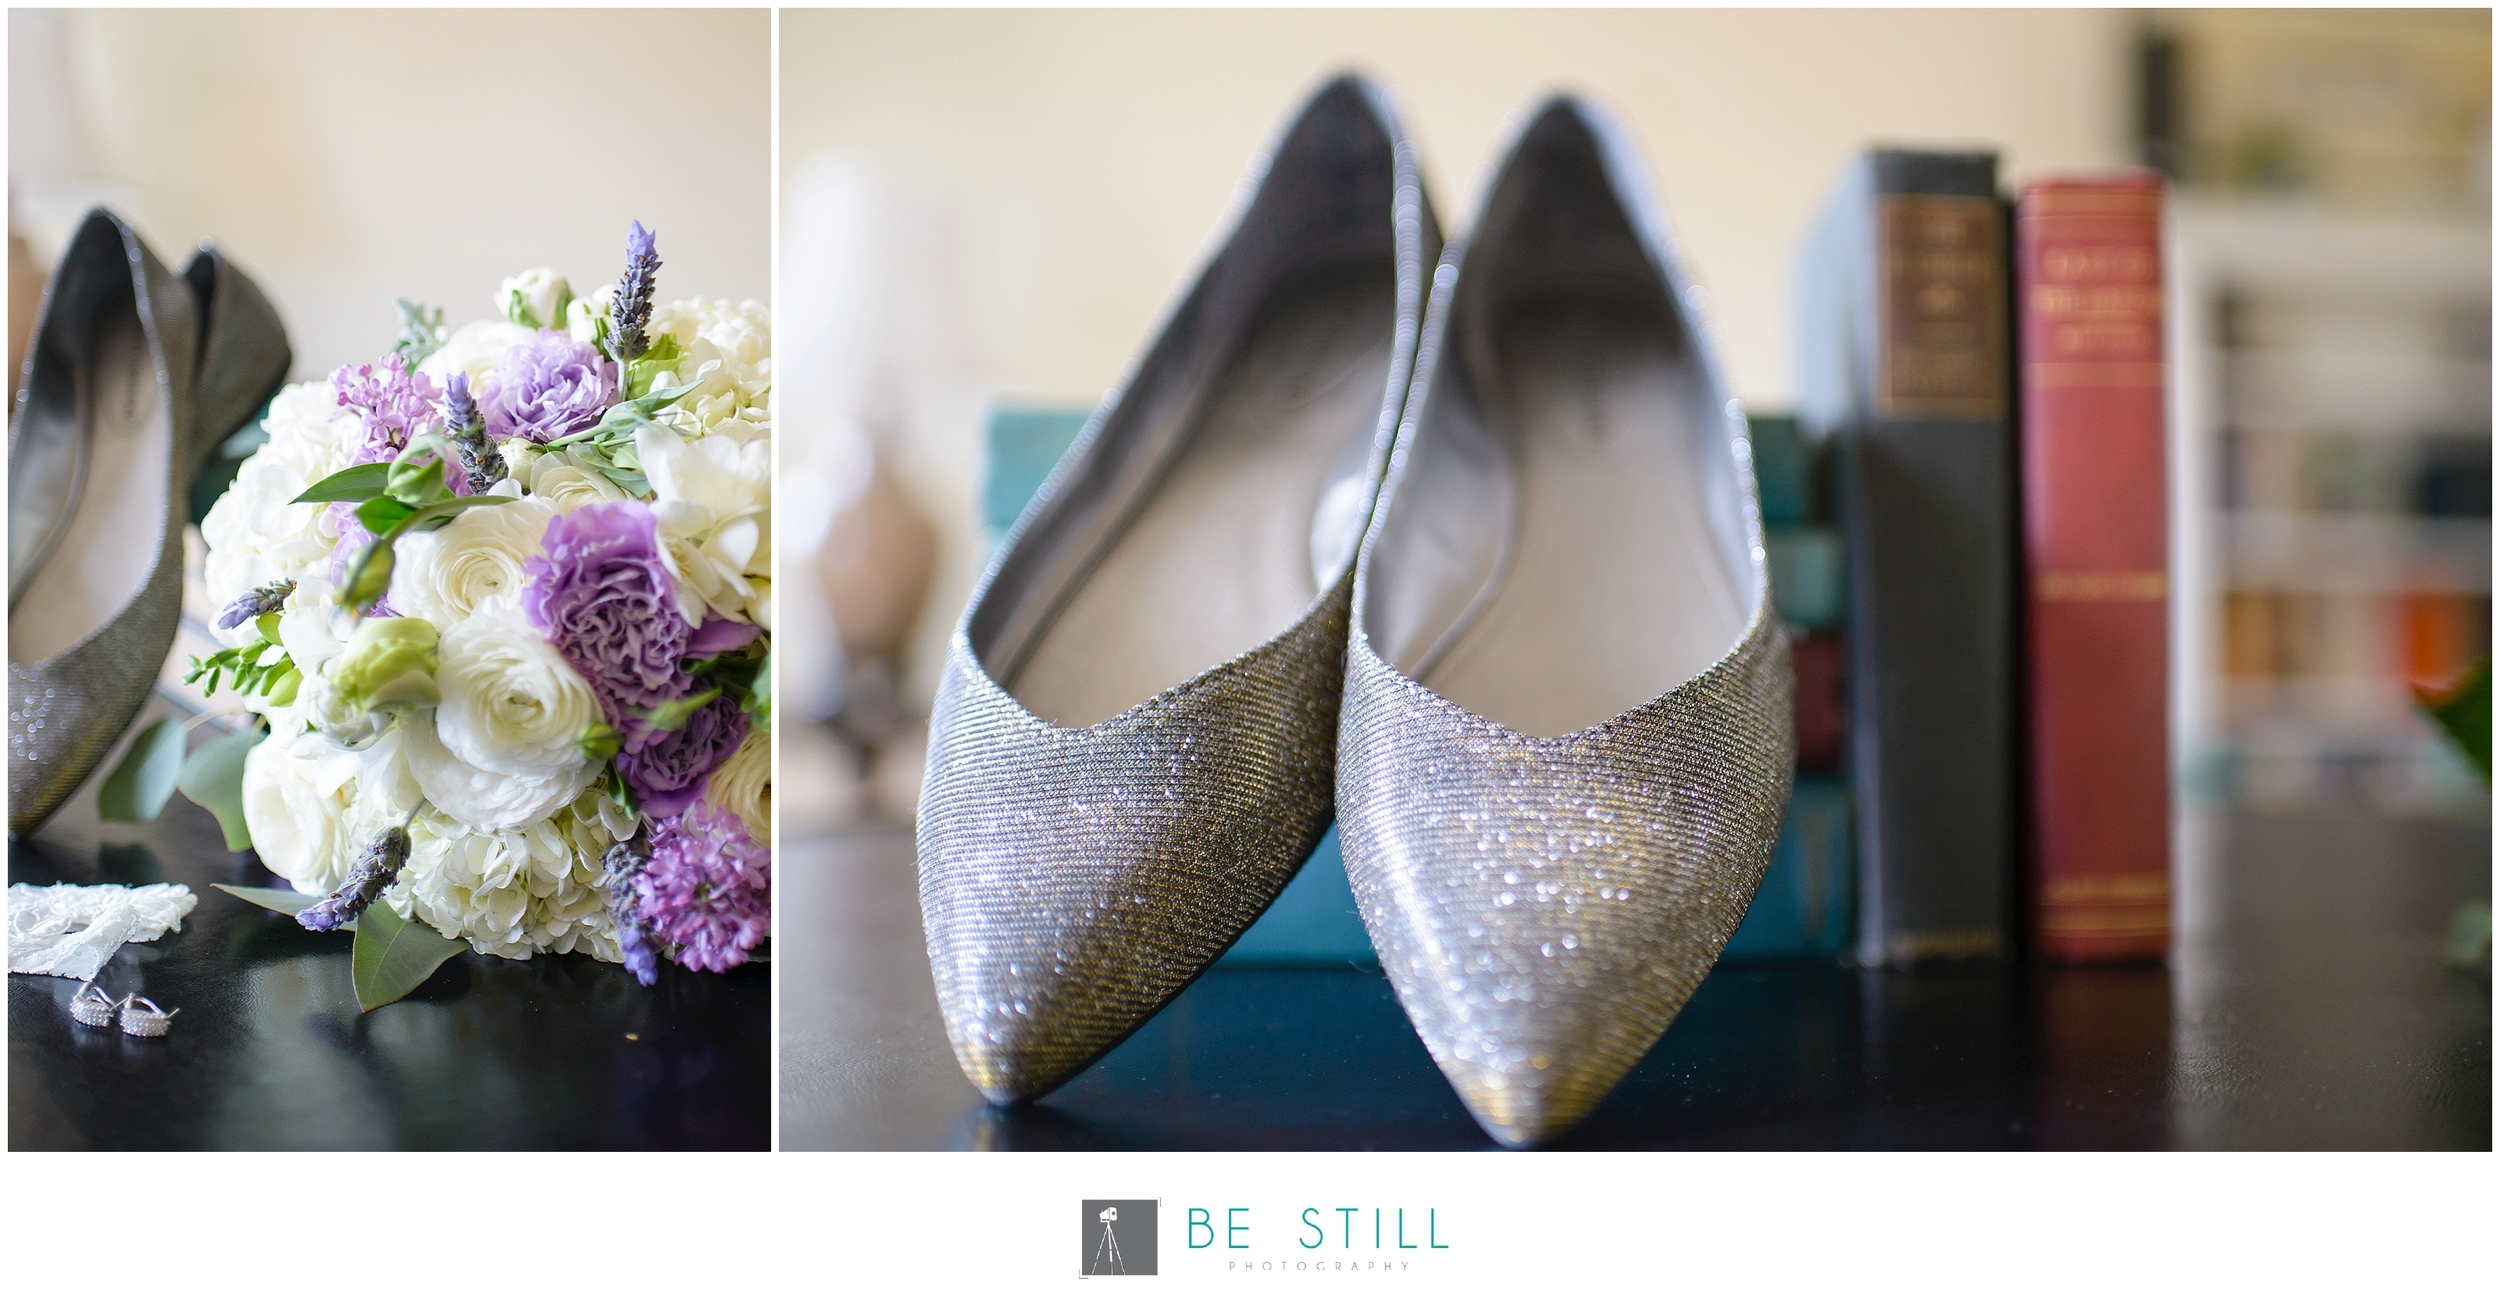 San Diego Wedding Photographer at Darlington House in La Jolla | Wedding shoes